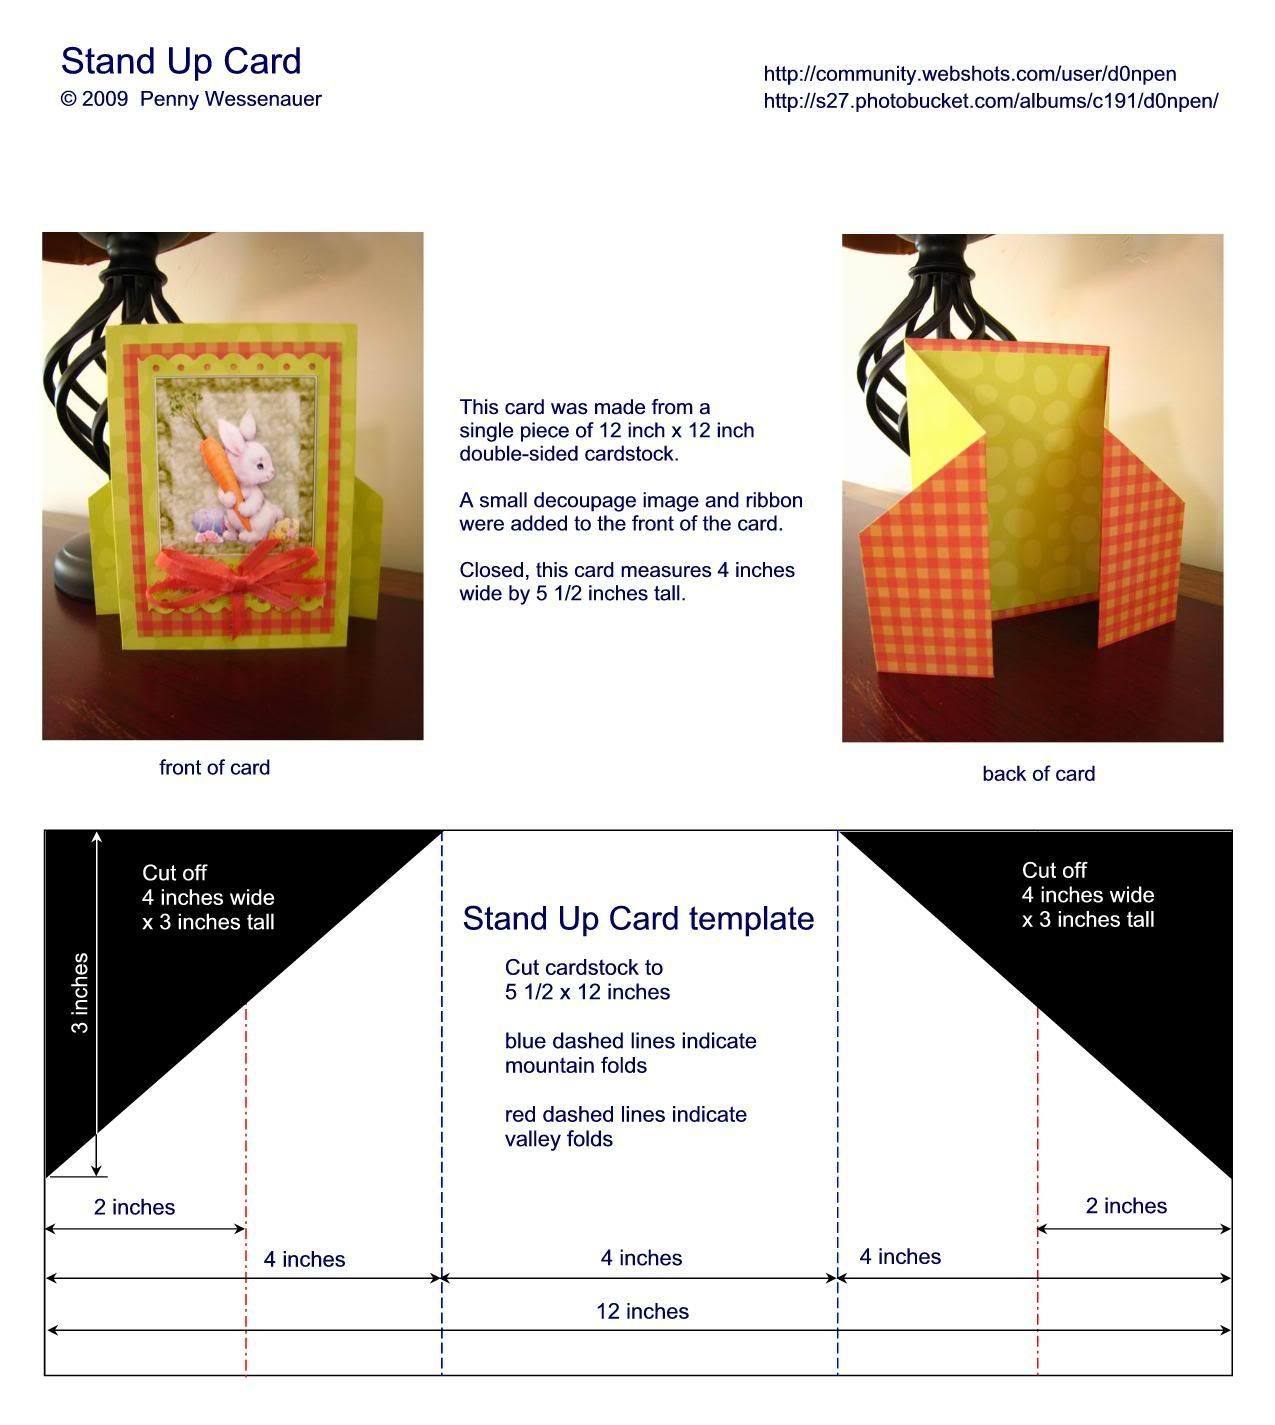 Stand Up Card Card Templates Card Making Tutorials Card Tutorials